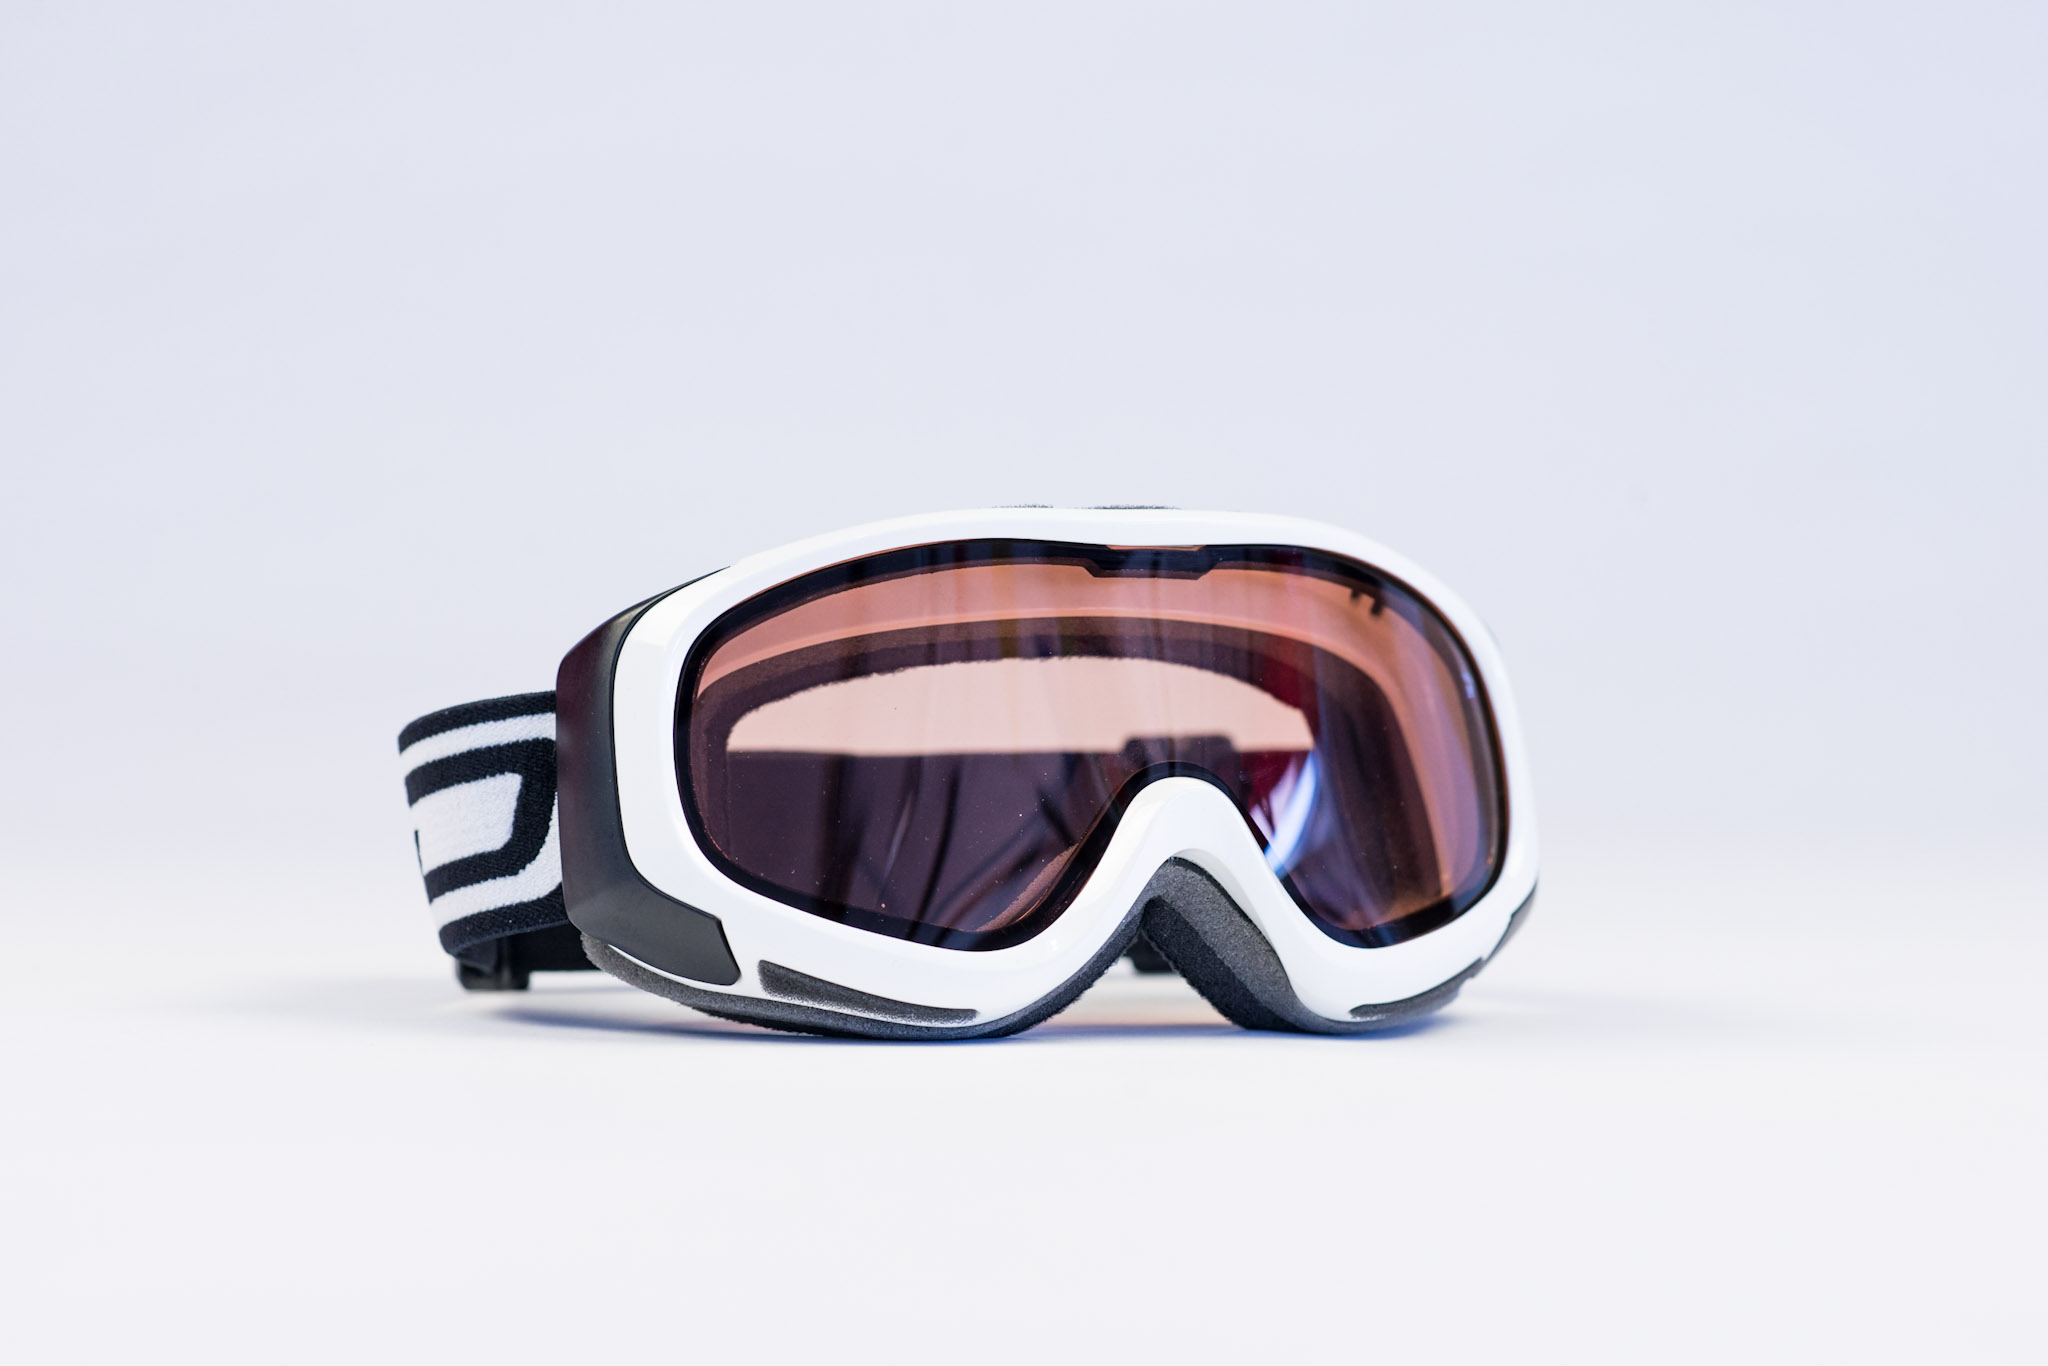 Dirty Dog Ski Goggles